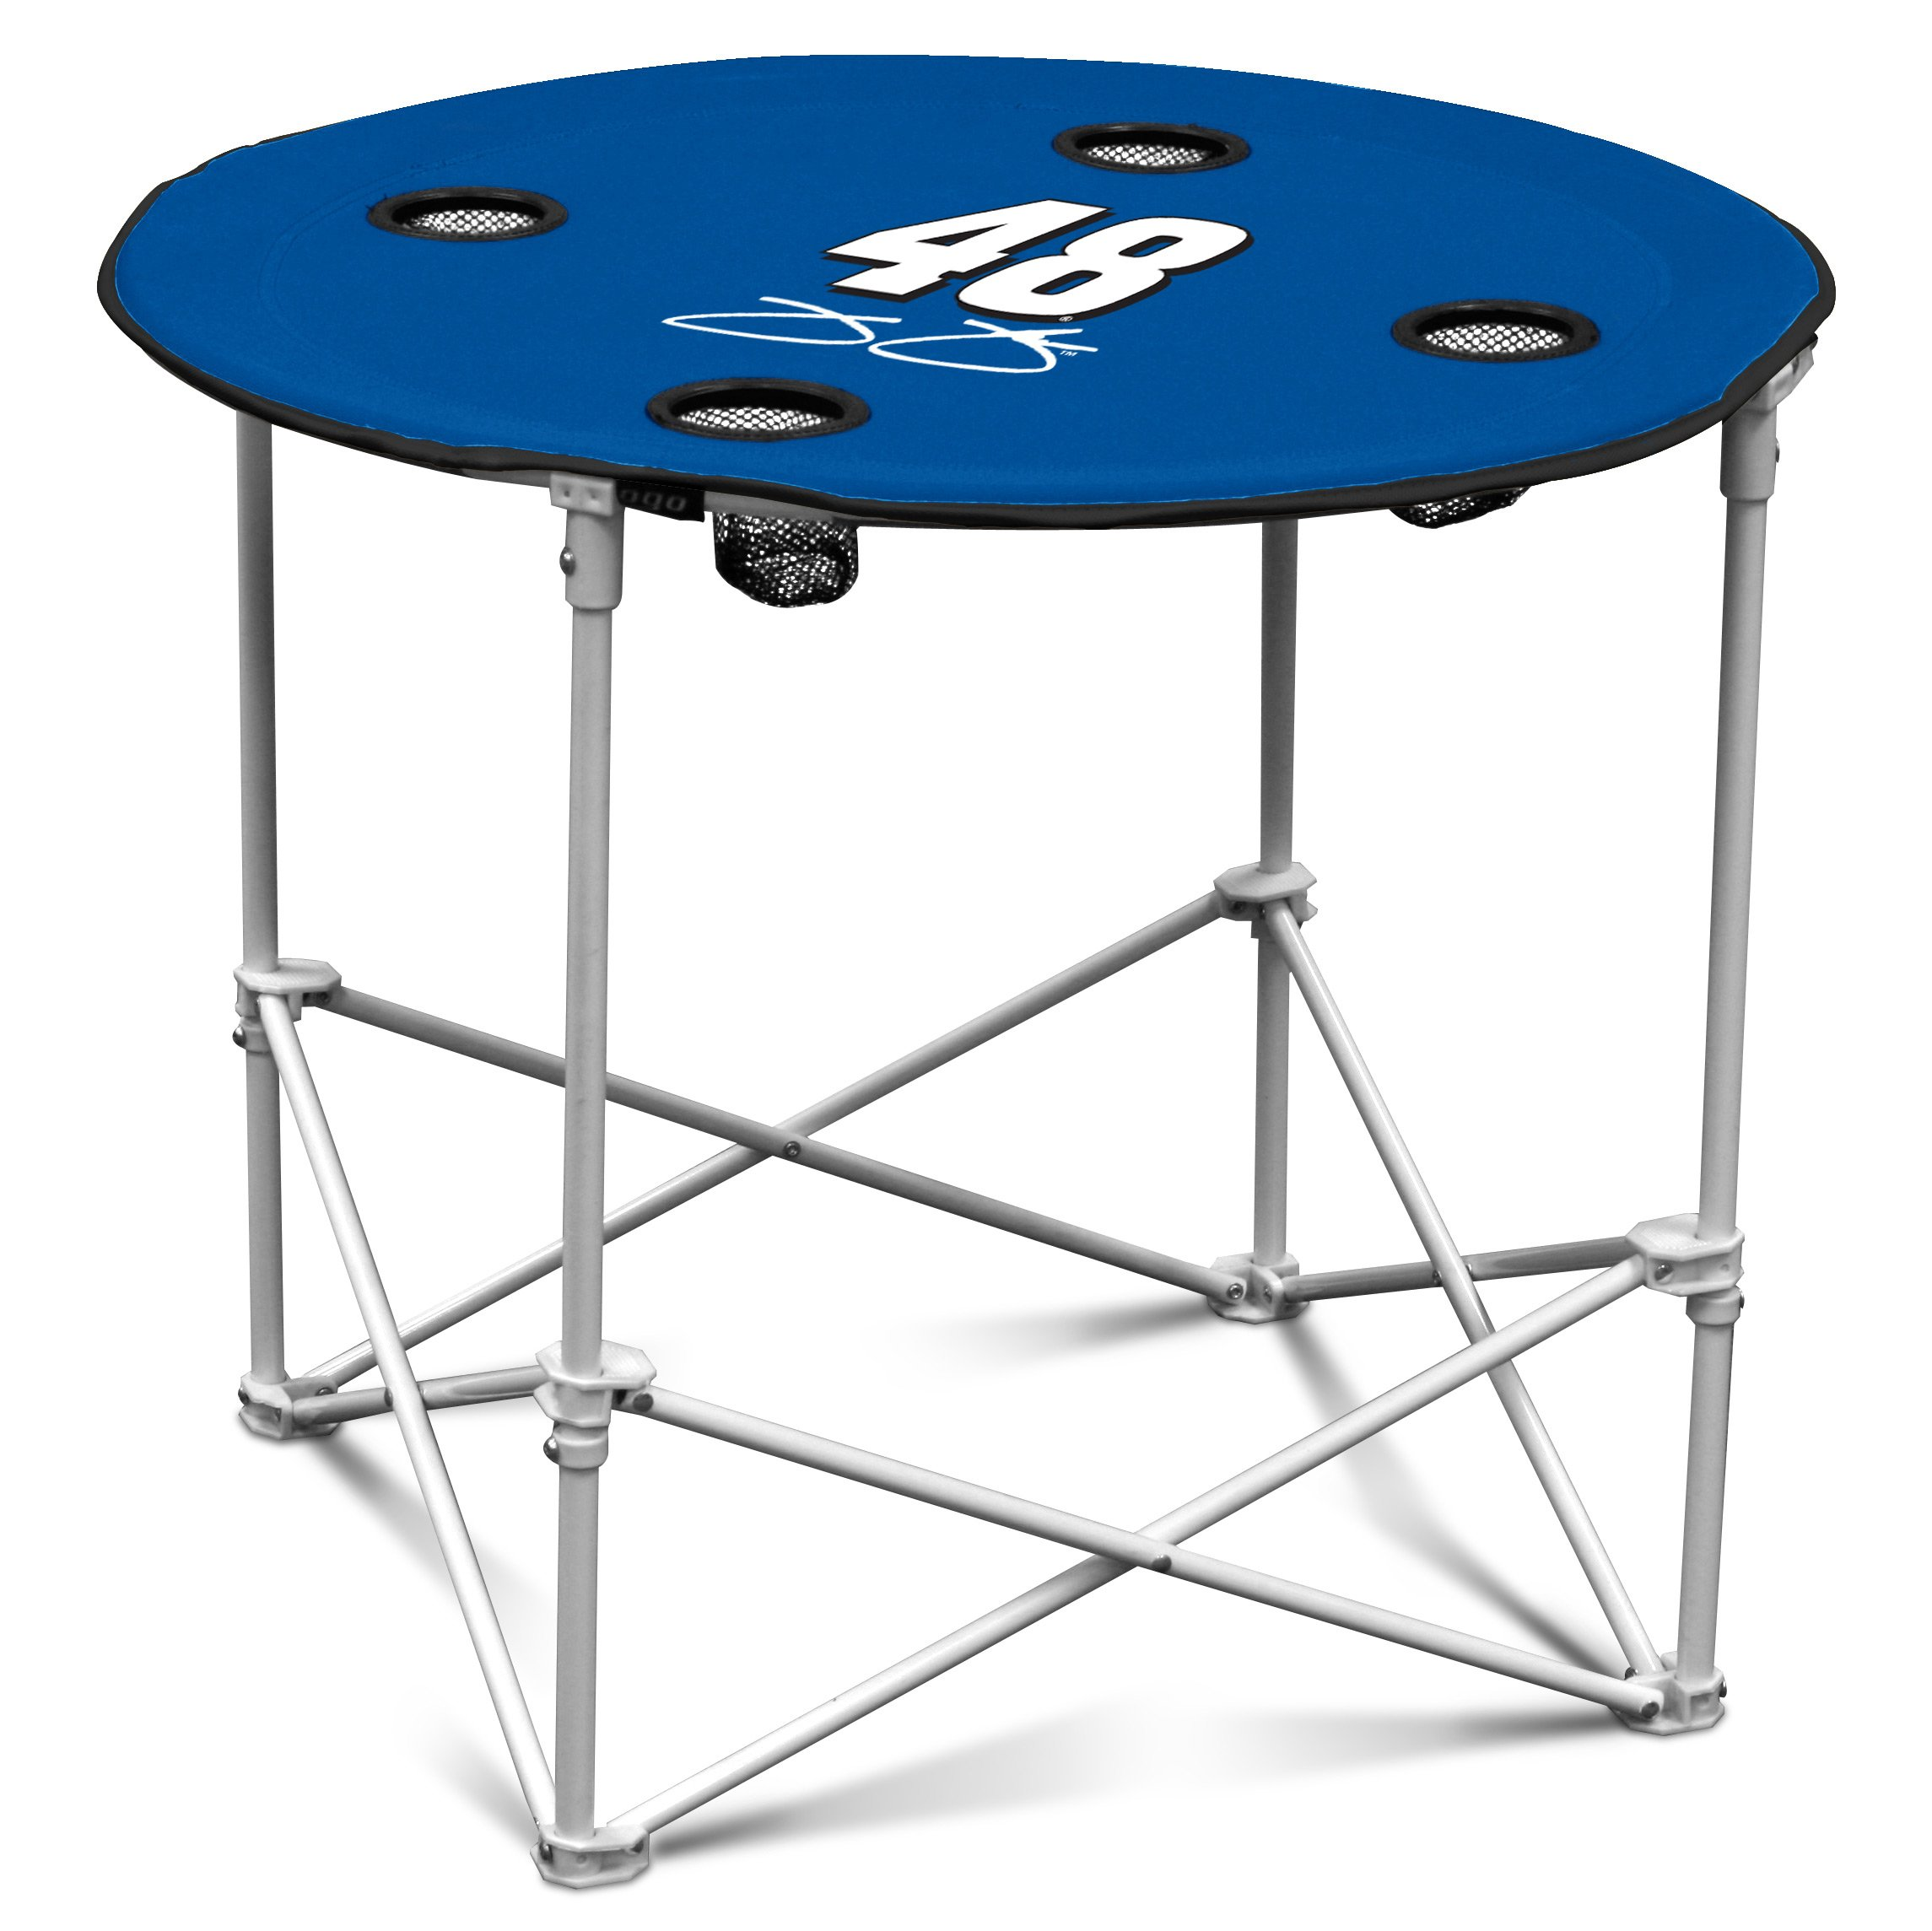 Logo Brands NASCAR Jimmie Johnson Racing Unisex Round Table, Blue, One Size